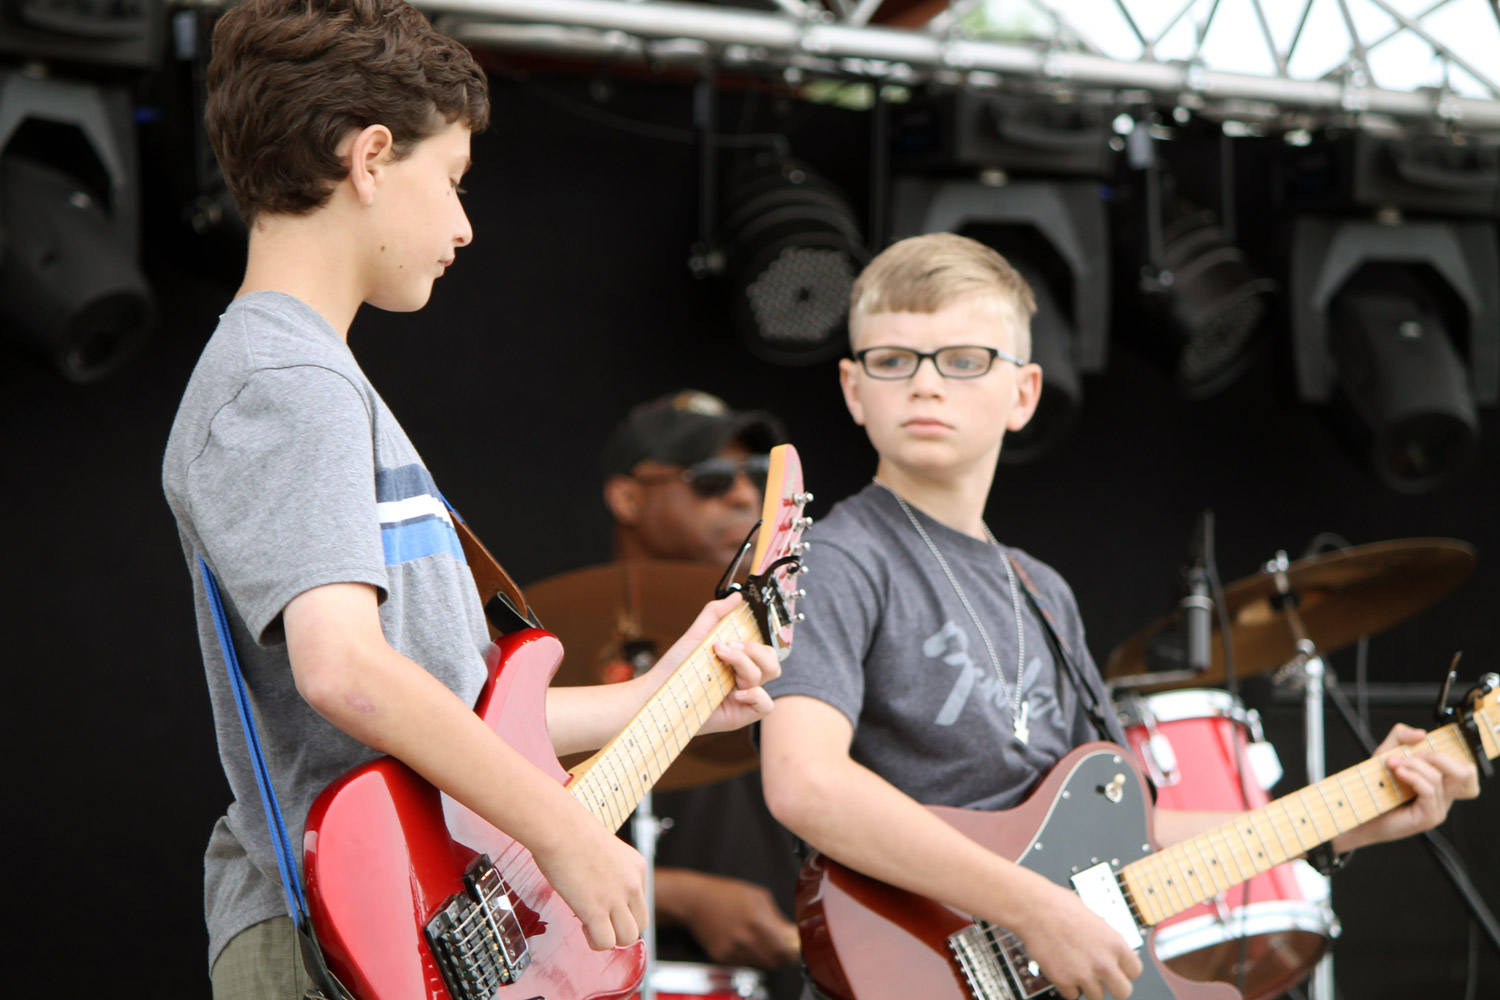 Rock Concerts - Who doesn't want to be a rock star? Students meet, rehearse, and then perform songs of their choice (Imagine Dragons, Led Zeppelin, Carrie Underwood…). Venues have included the Milwaukee Ale House, Mo's Irish Pub, Tosa Fest, Hart Fest, Anodyne Coffee, Tosa Fourth of July Parade and more.